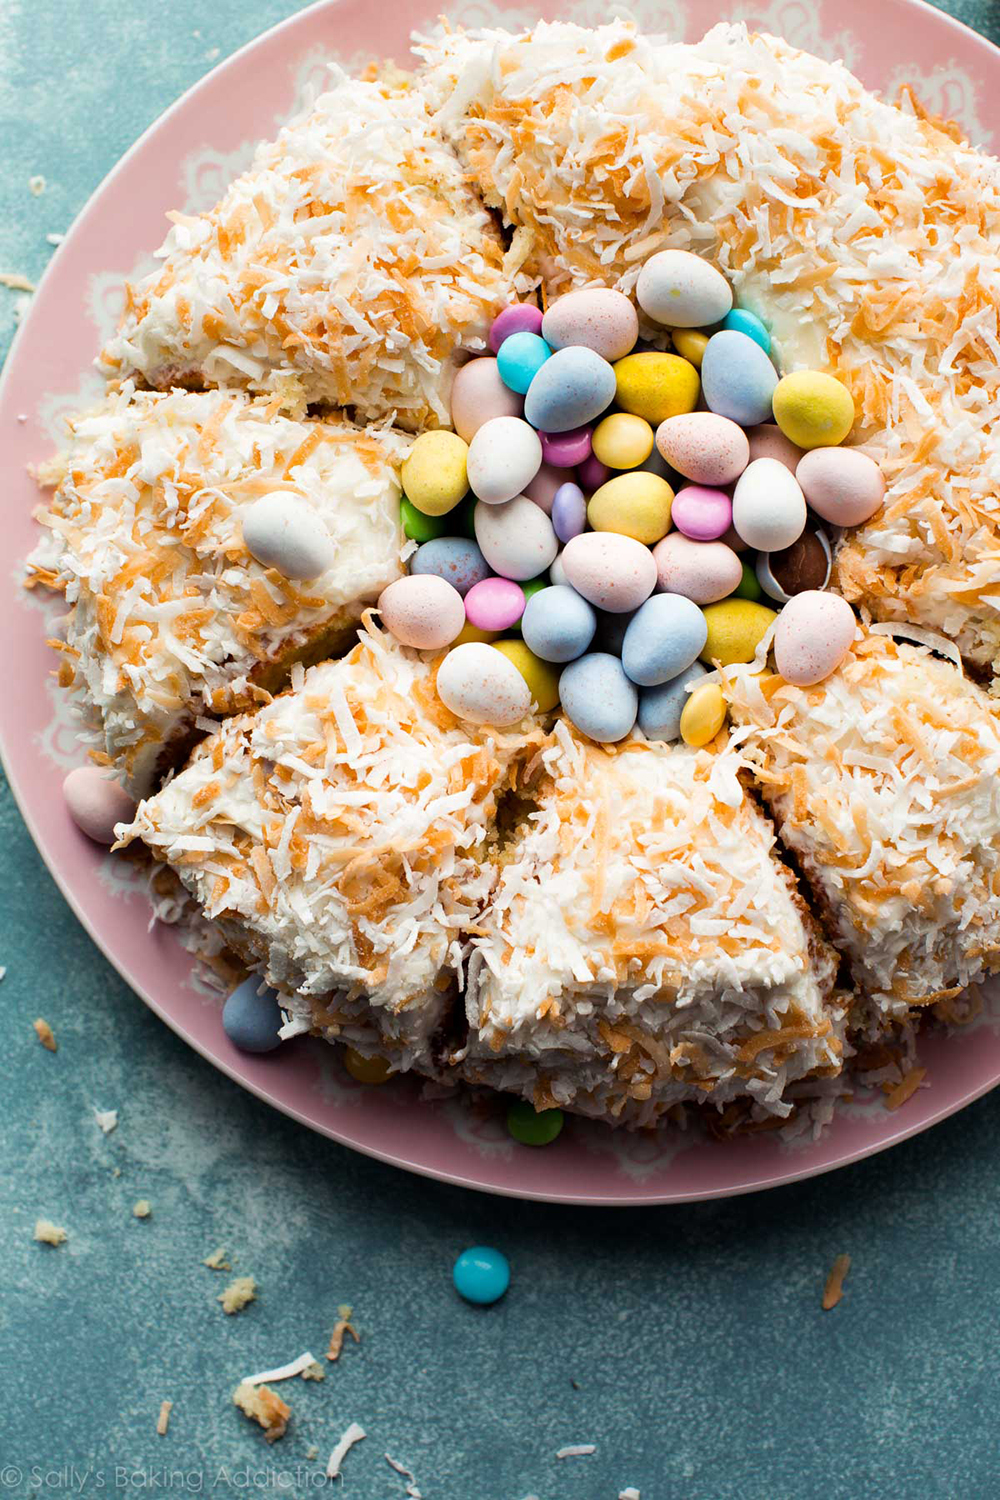 Coconut Easter Nest Cake | Sally's Baking Addiction - Pinterest Picks - 10 Delightful Easter Desserts